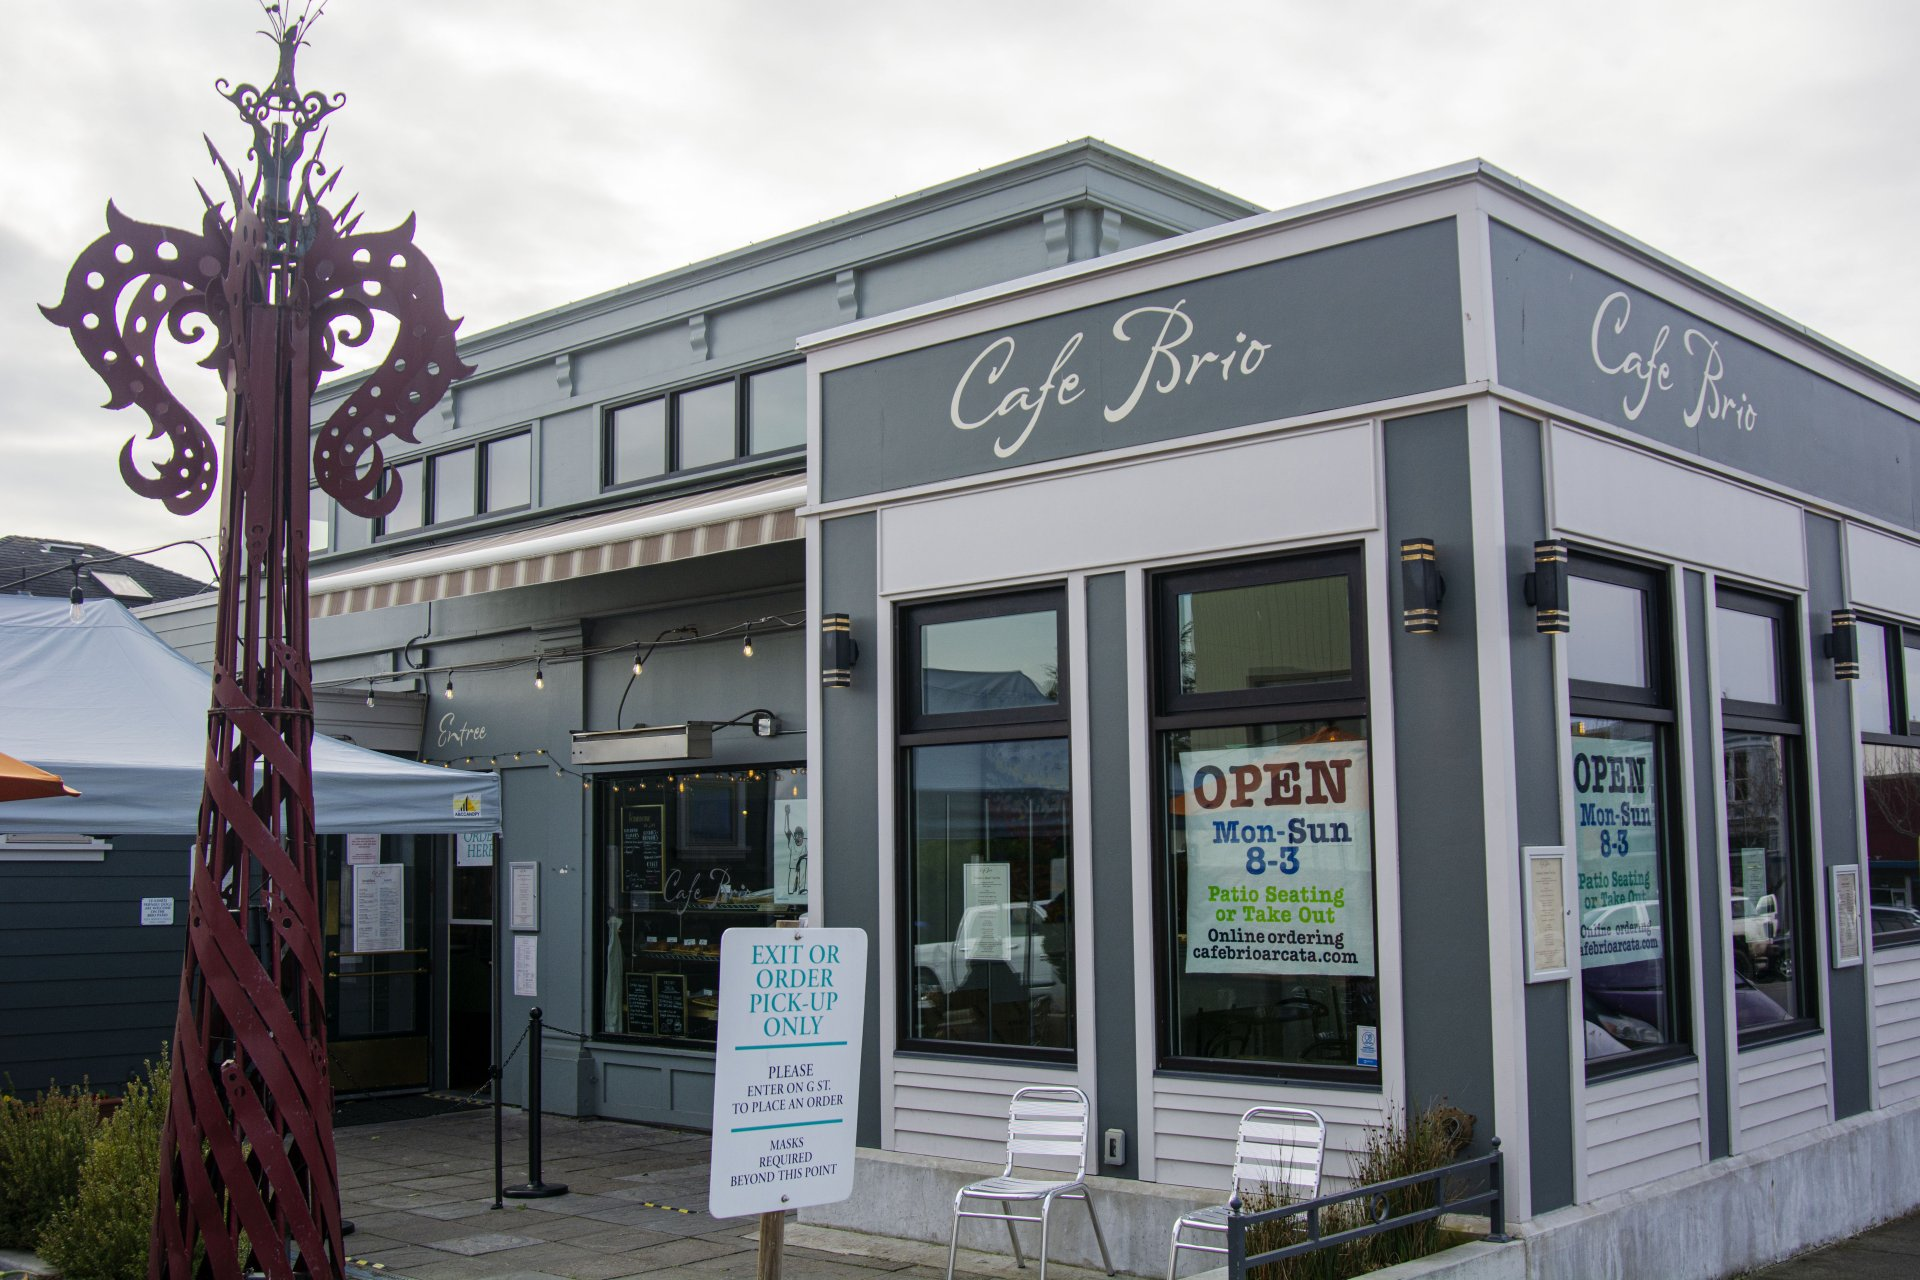 Cafe Brio in Arcata, CA on Feb. 9. is closed for dining indoors but customers are still able to come and pick up orders as well as use outdoor dining while observing COVID-19 regulations. | Photo by Elliott Portillo